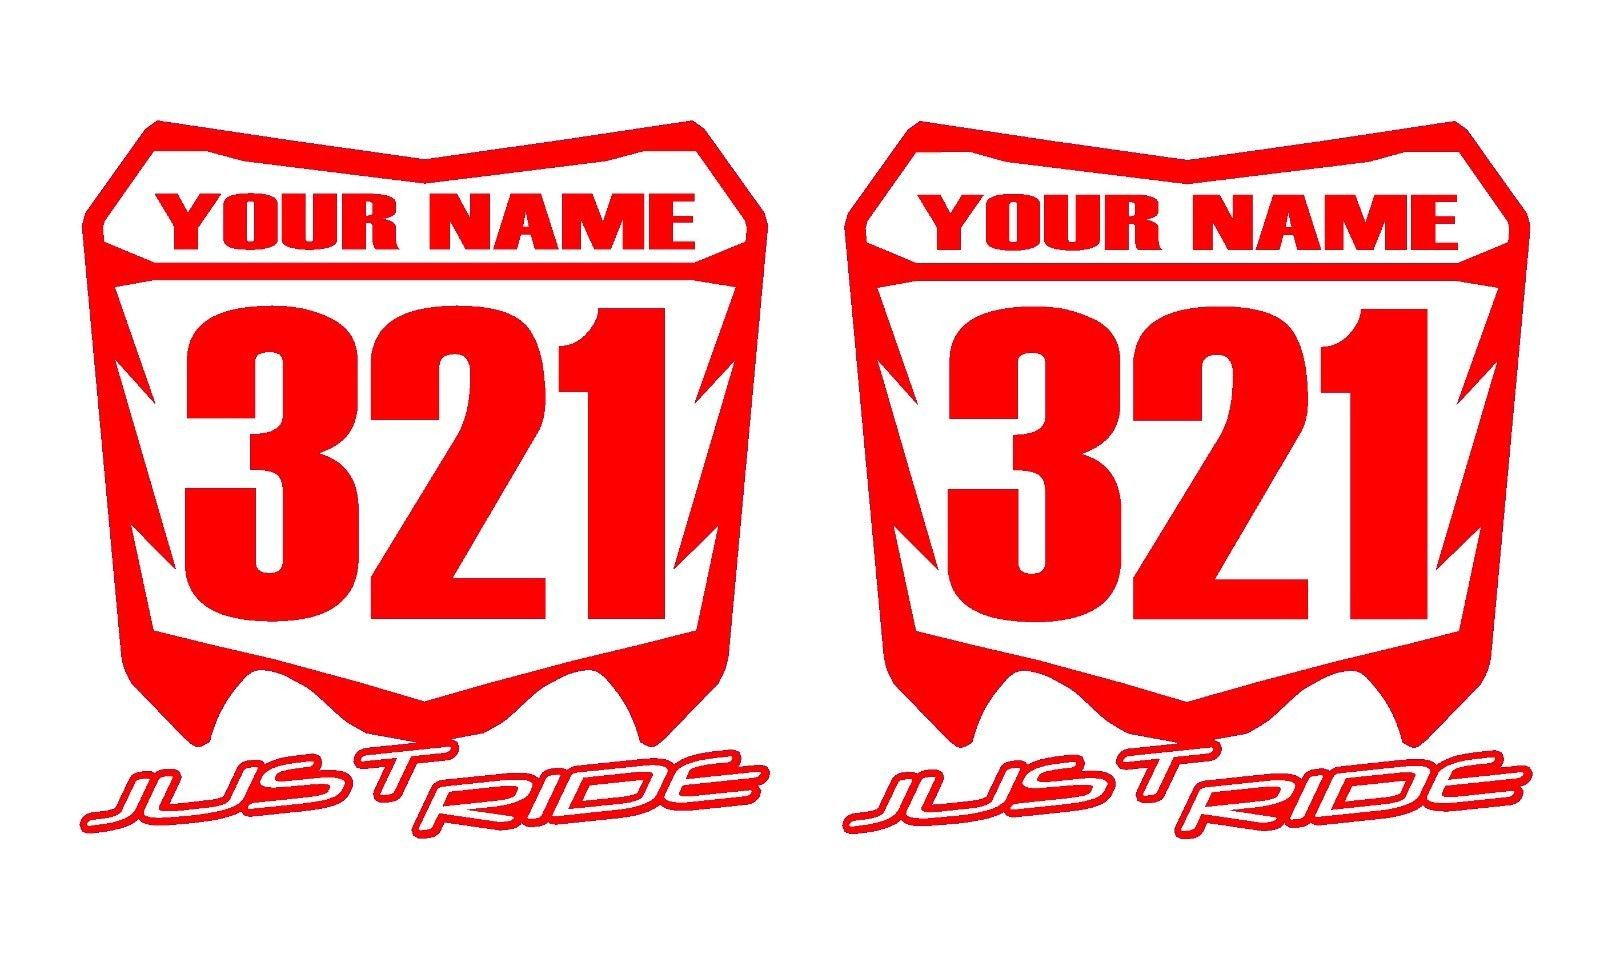 Details About Motocross Number Plate Decal Sticker Custom Name